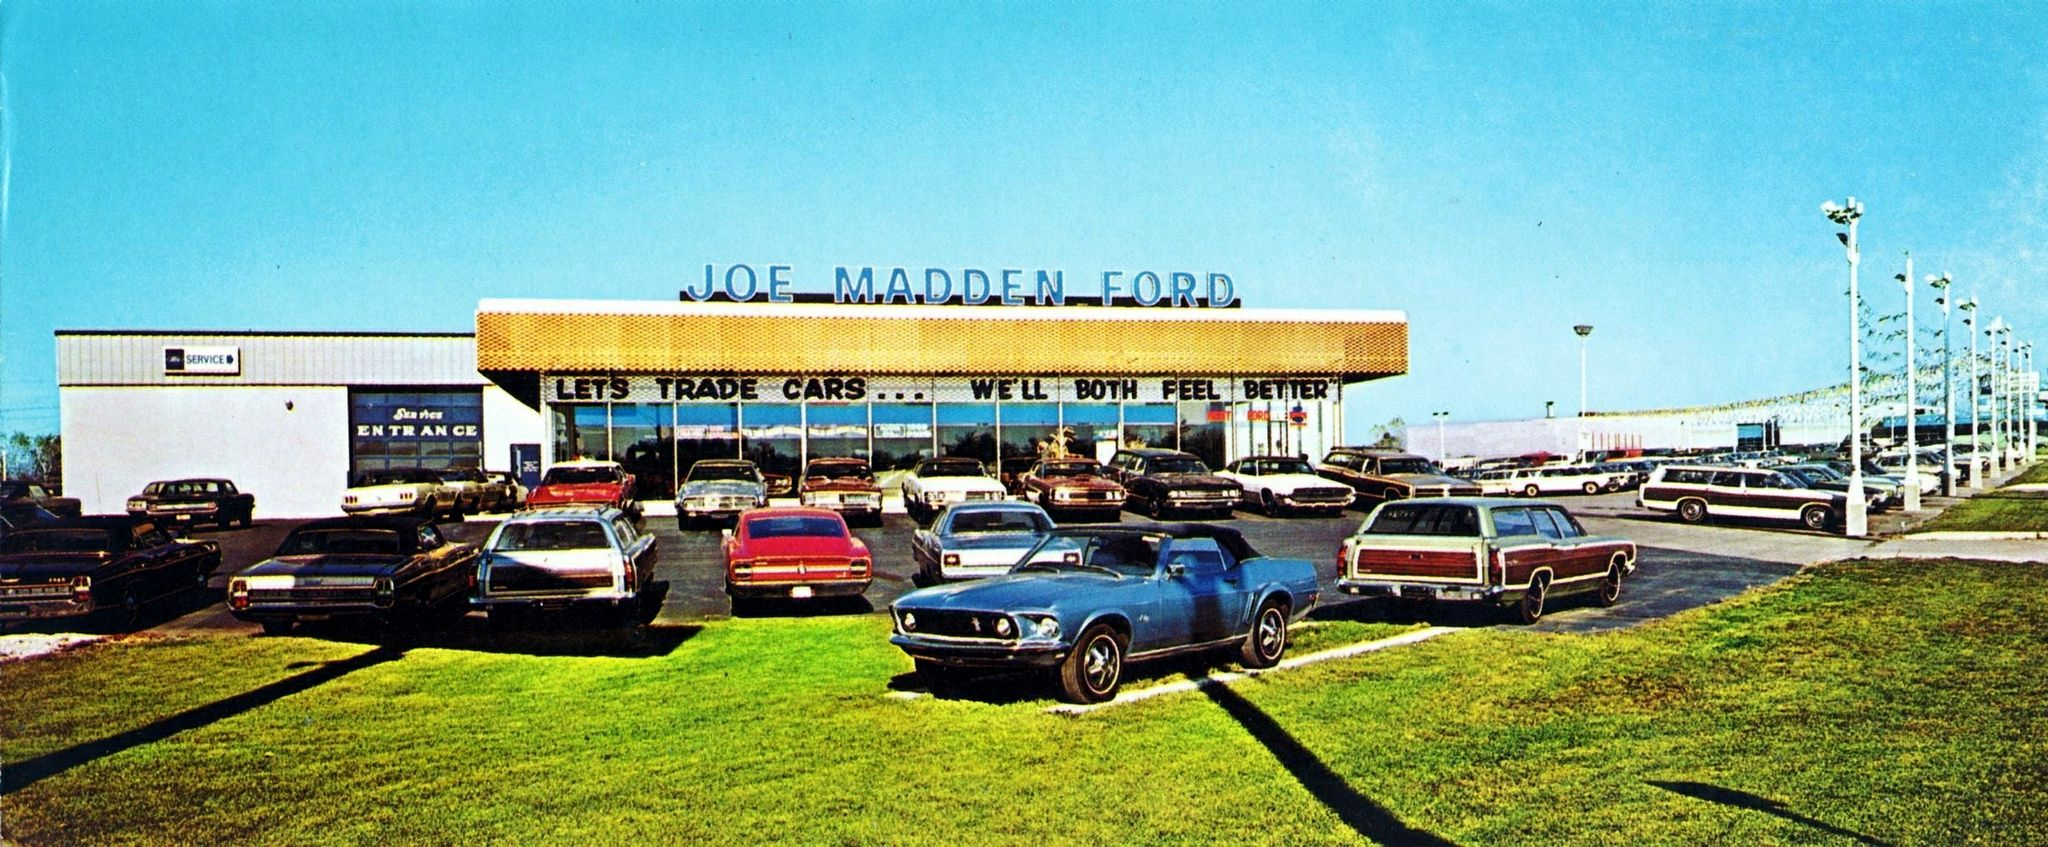 1969 Joe Madden Ford Dealership Downers Grove Illinois Downers